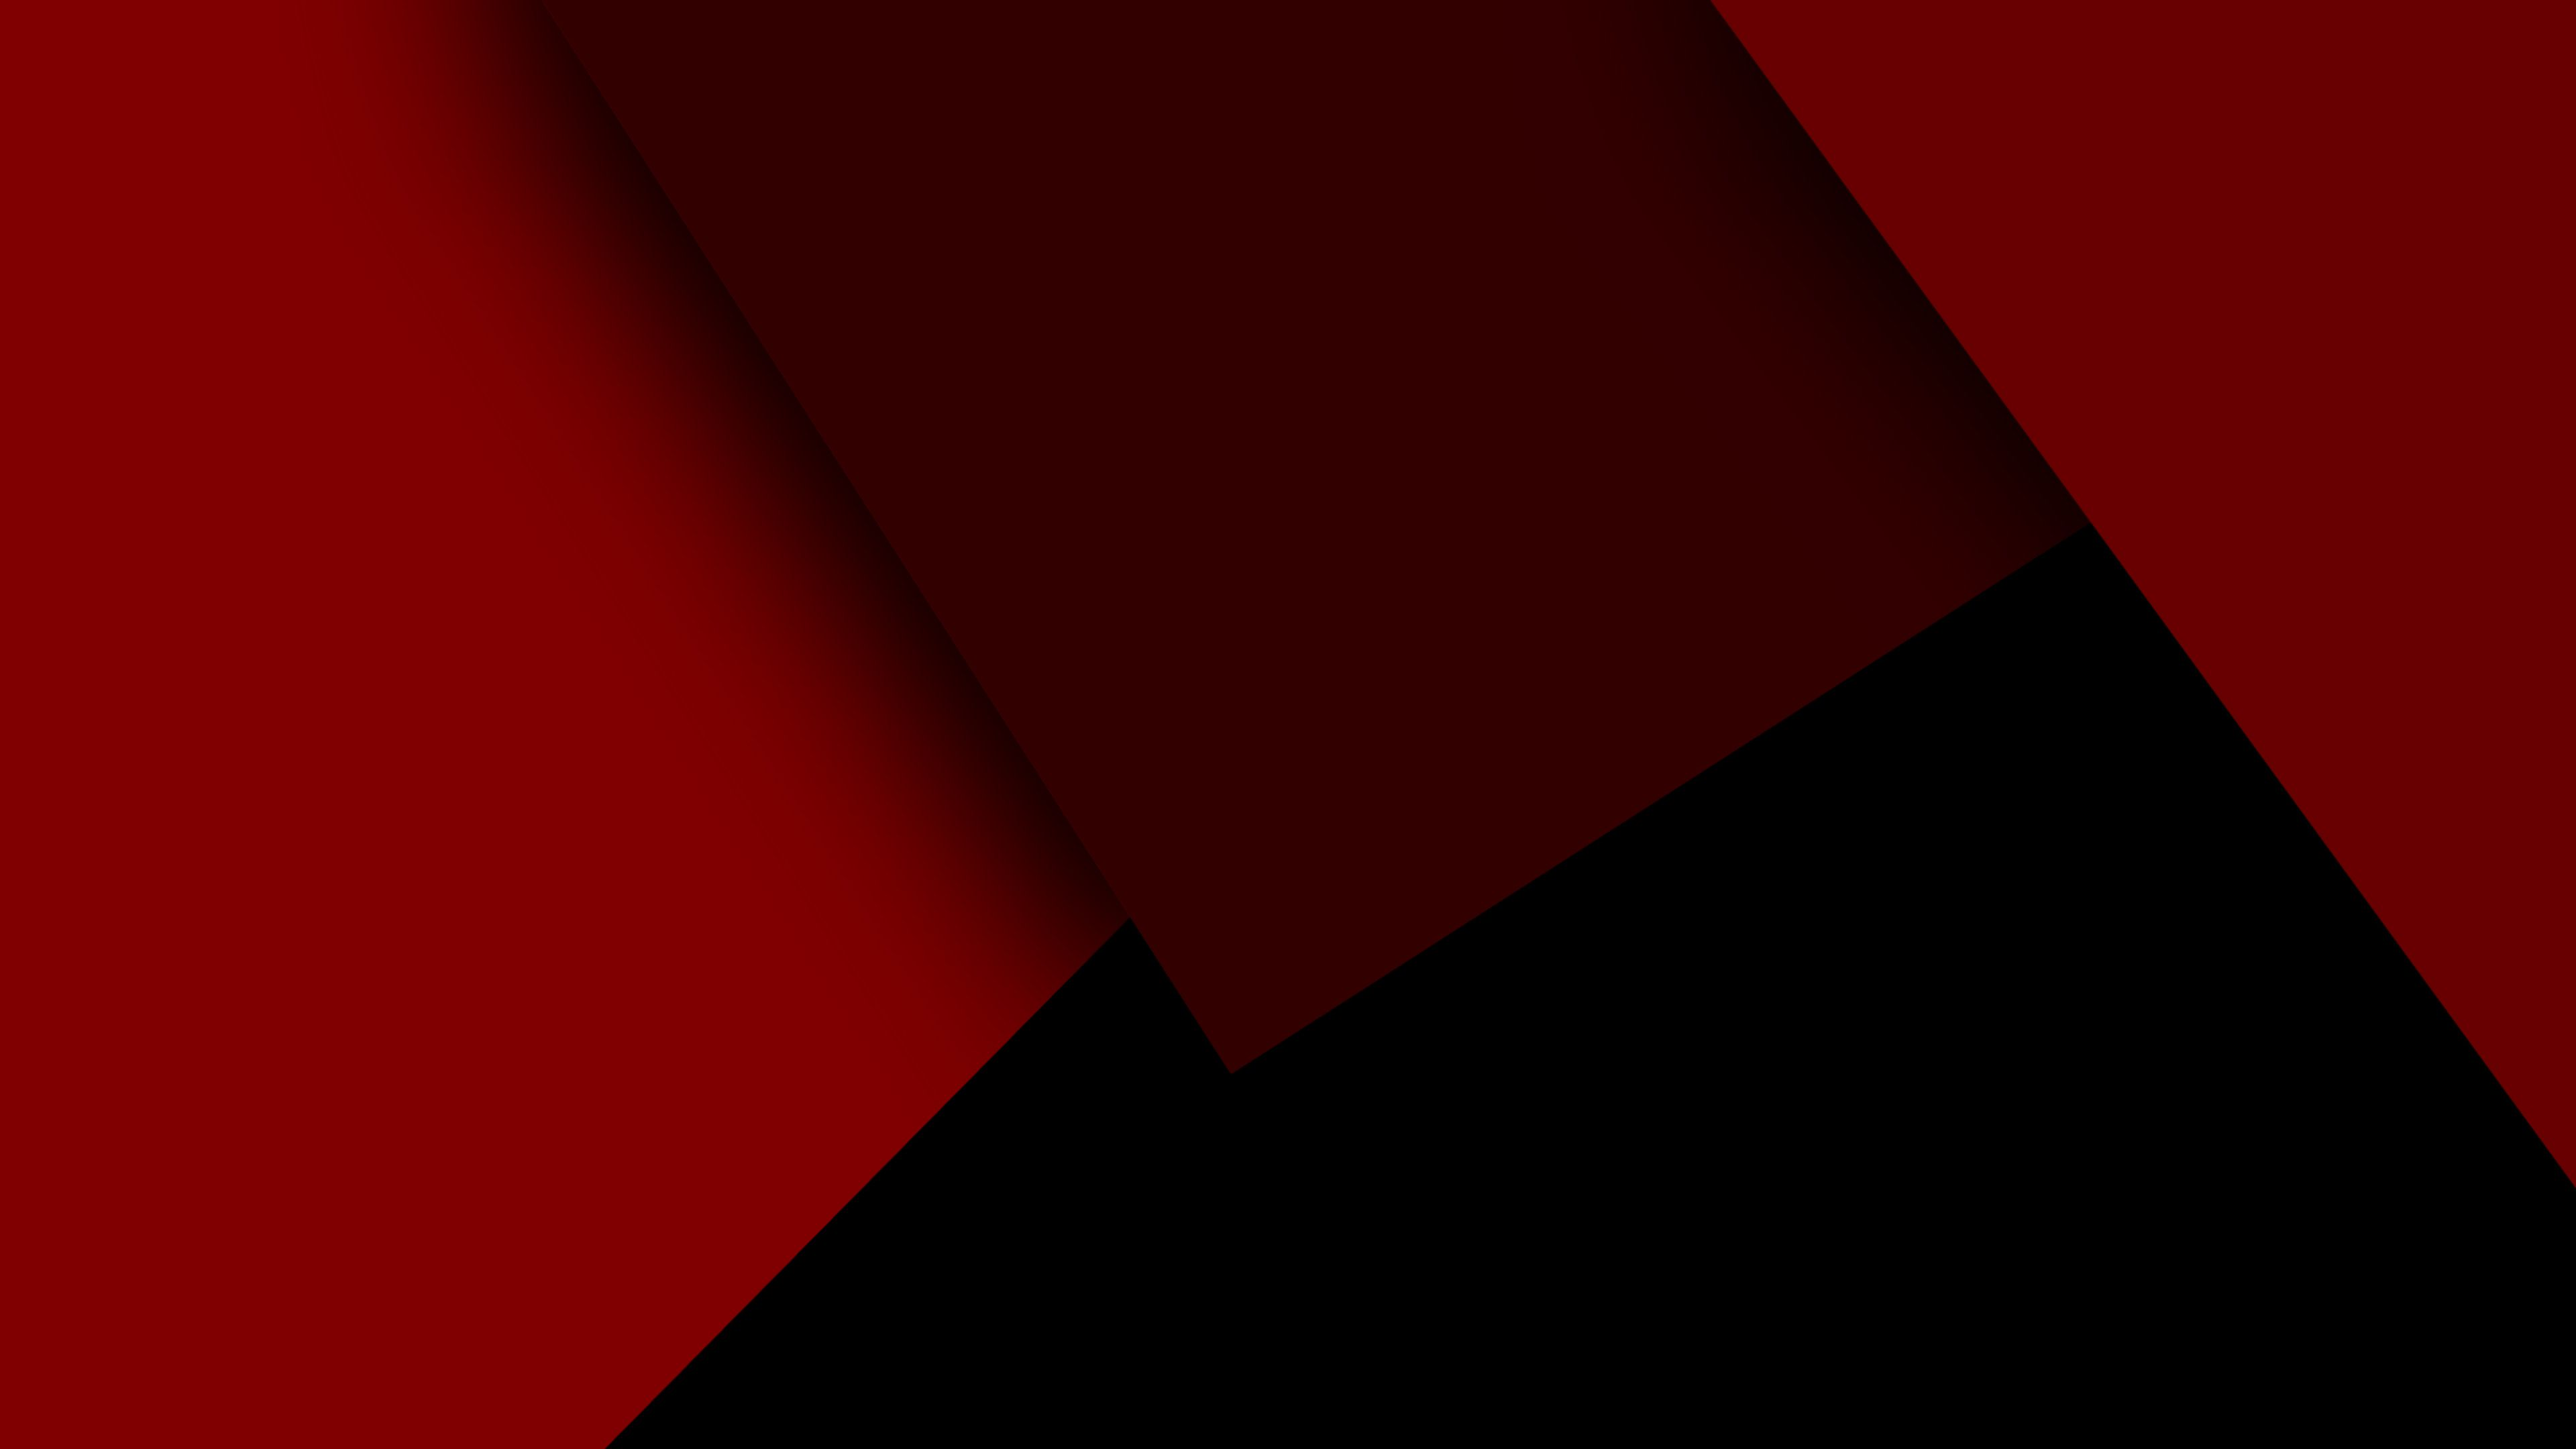 Dark Red Black Abstract 4k Red Wallpapers Hd Wallpapers Black Wallpapers Abstract Wallpapers 4k Wallpapers Dark Red Wallpaper Red Wallpaper Black Wallpaper